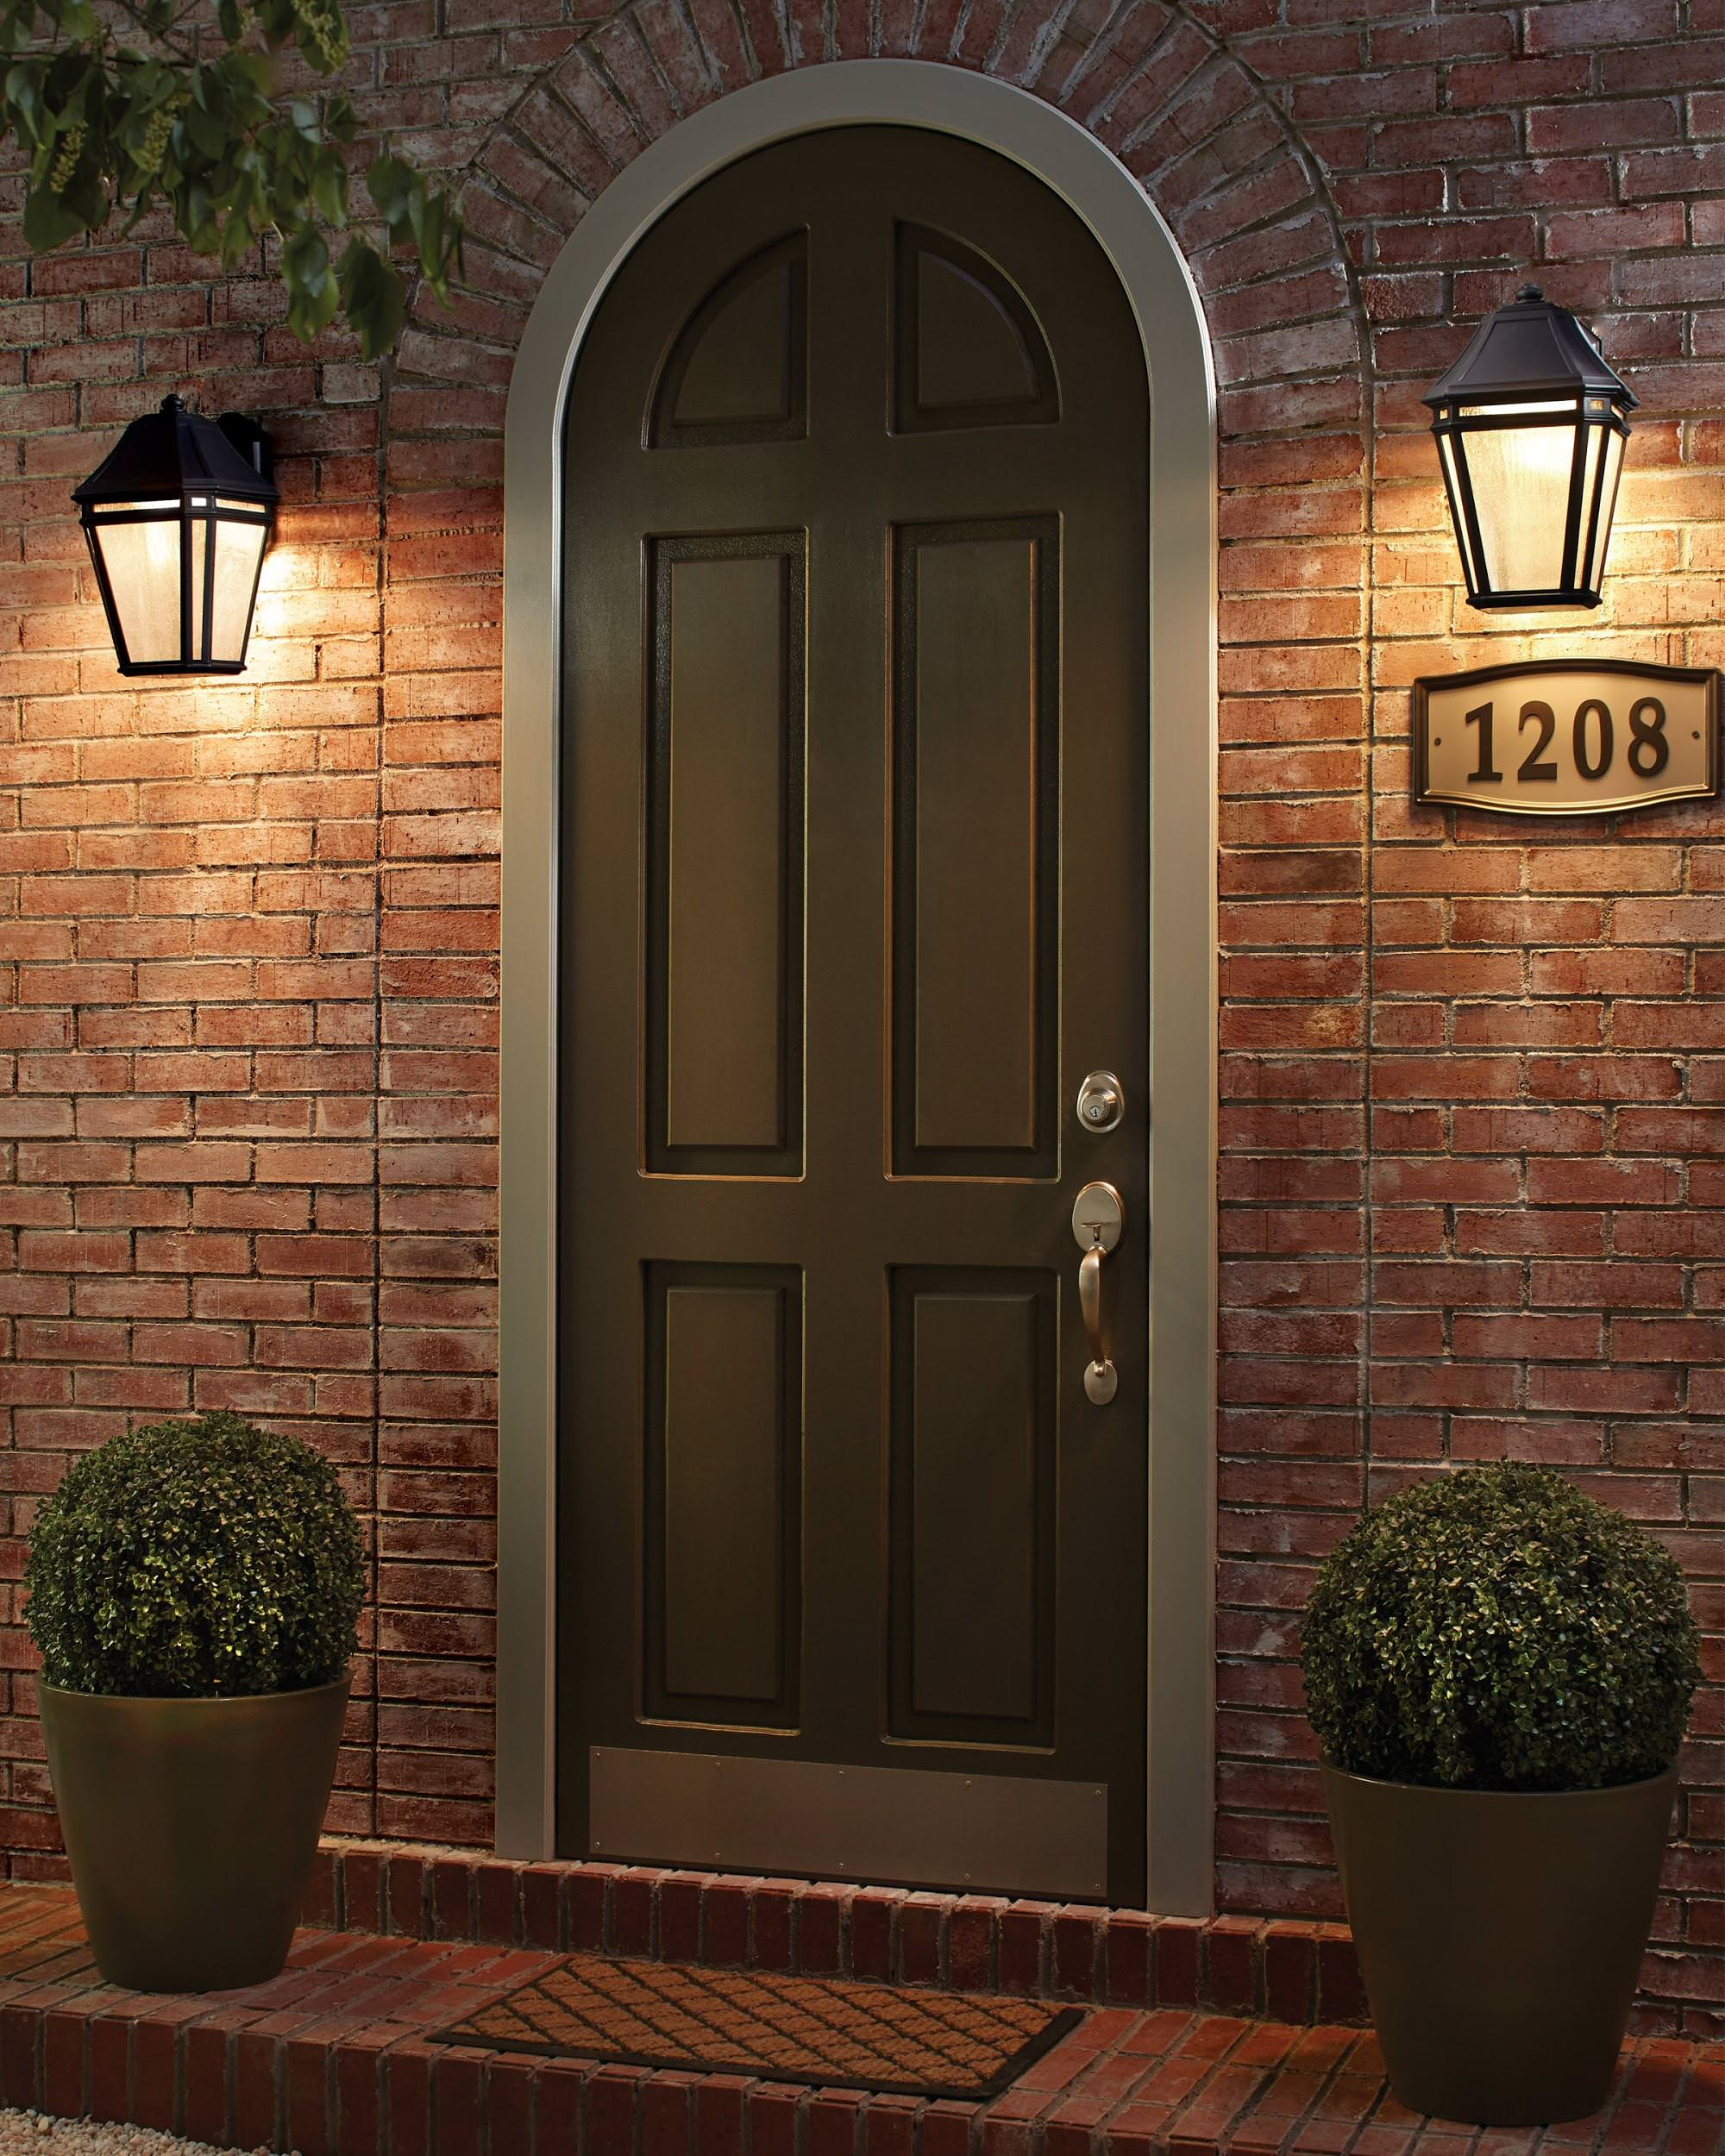 Outdoor hanging lanterns for patio - Front Door With Two Wall Mounted Lights